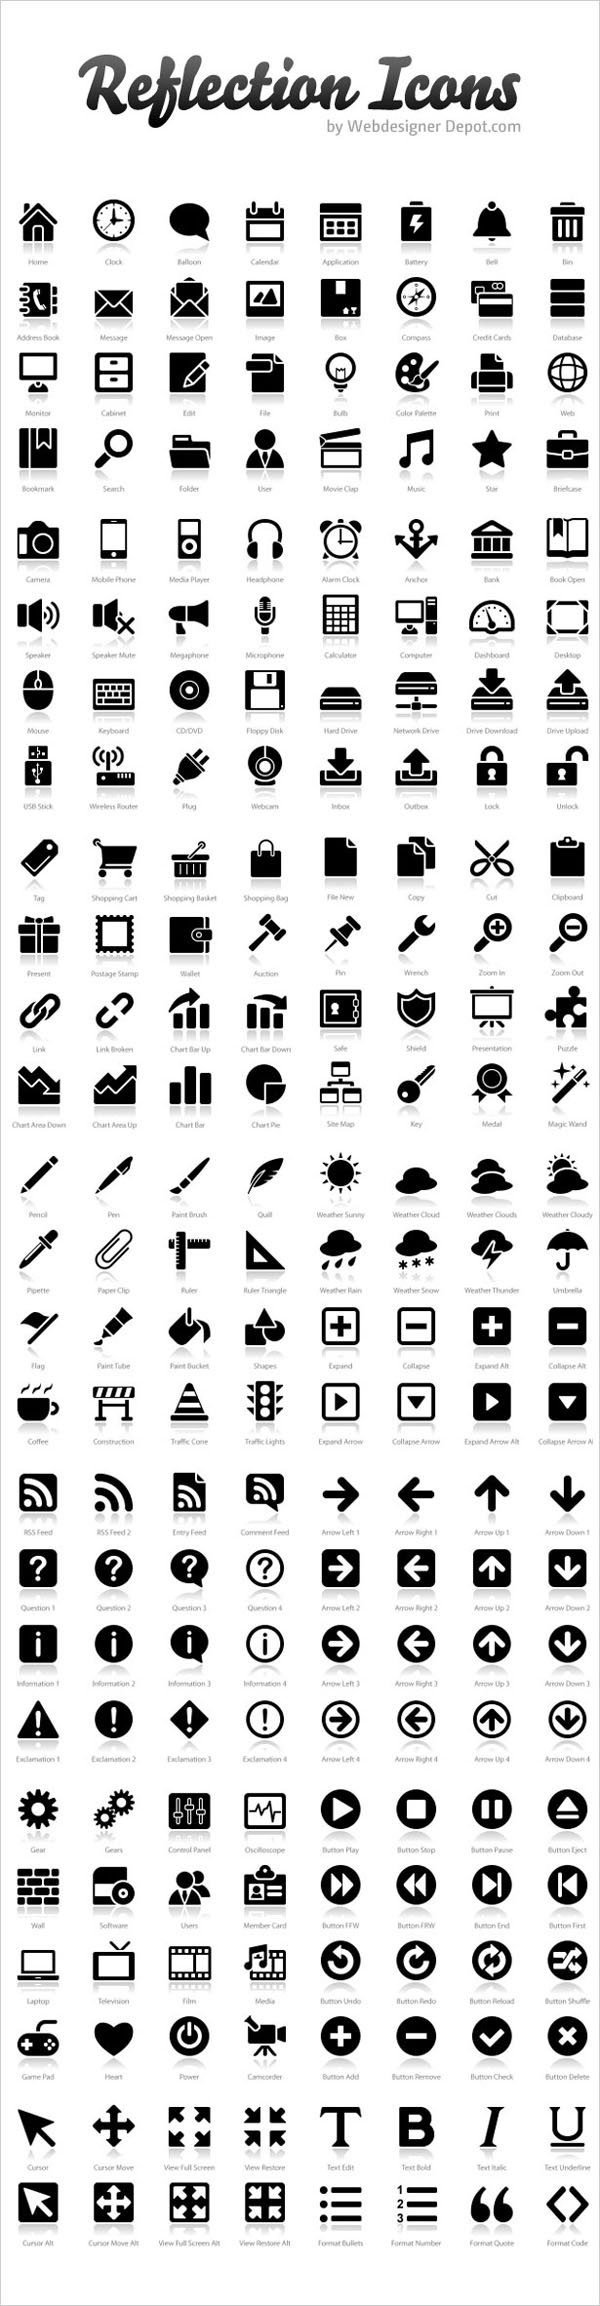 Download 200+ Free Exclusive Reflection Icons